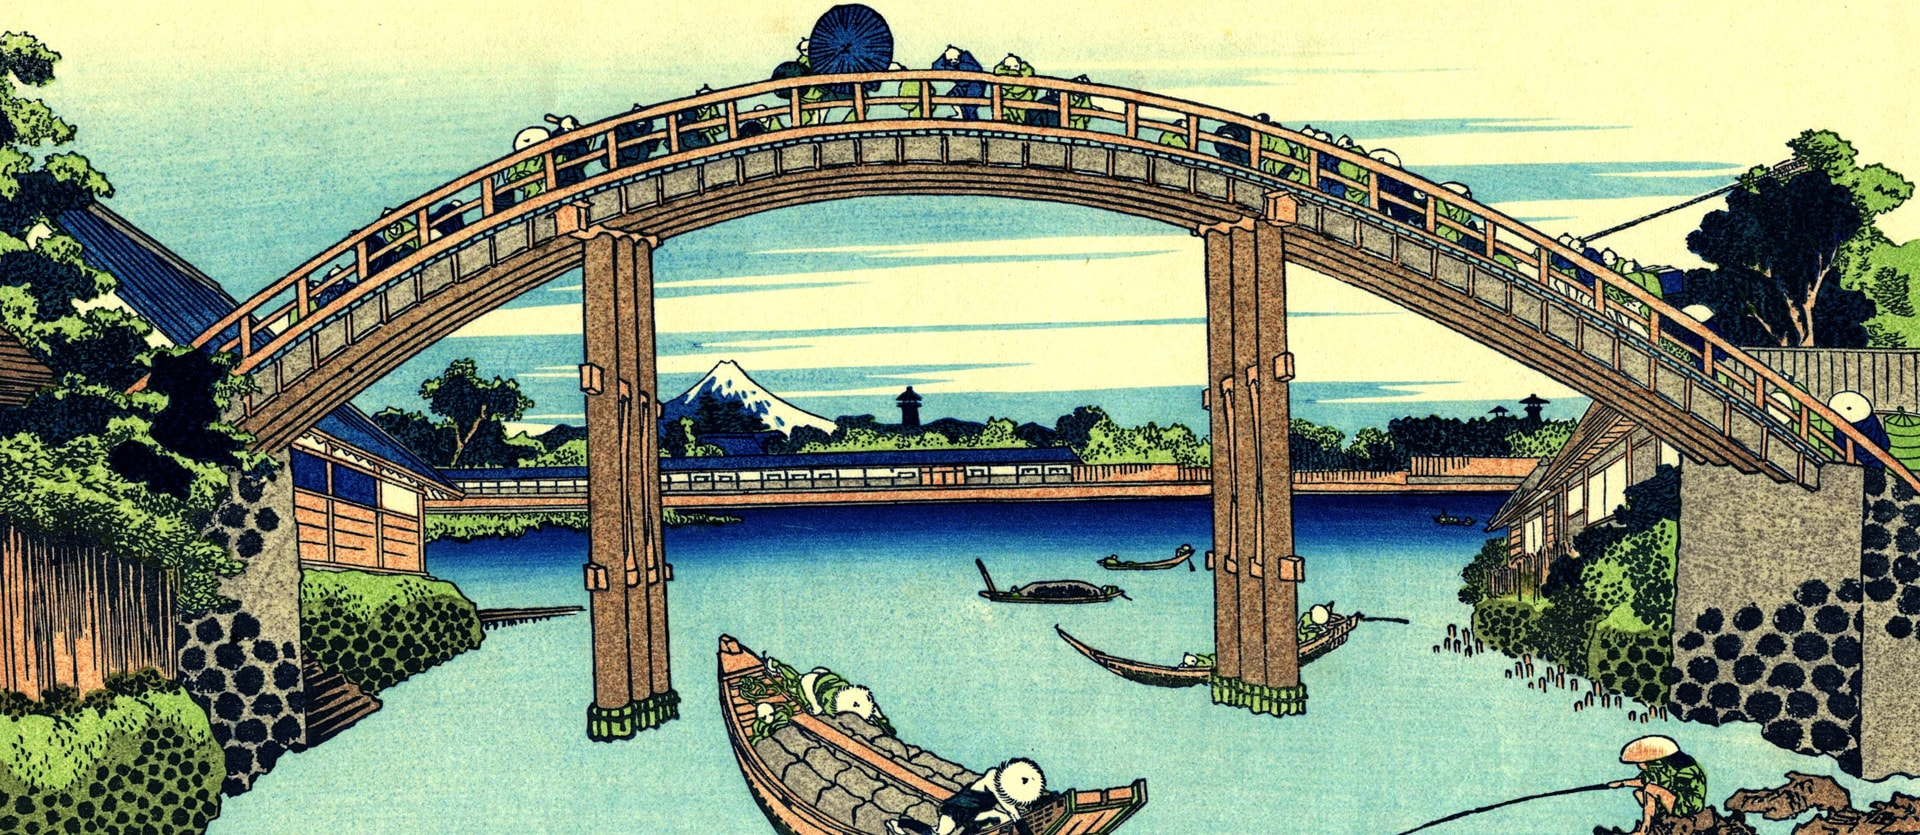 As a Japanese SEO Specialist, I will build a bridge for your business to reach more potential customers in Japan.